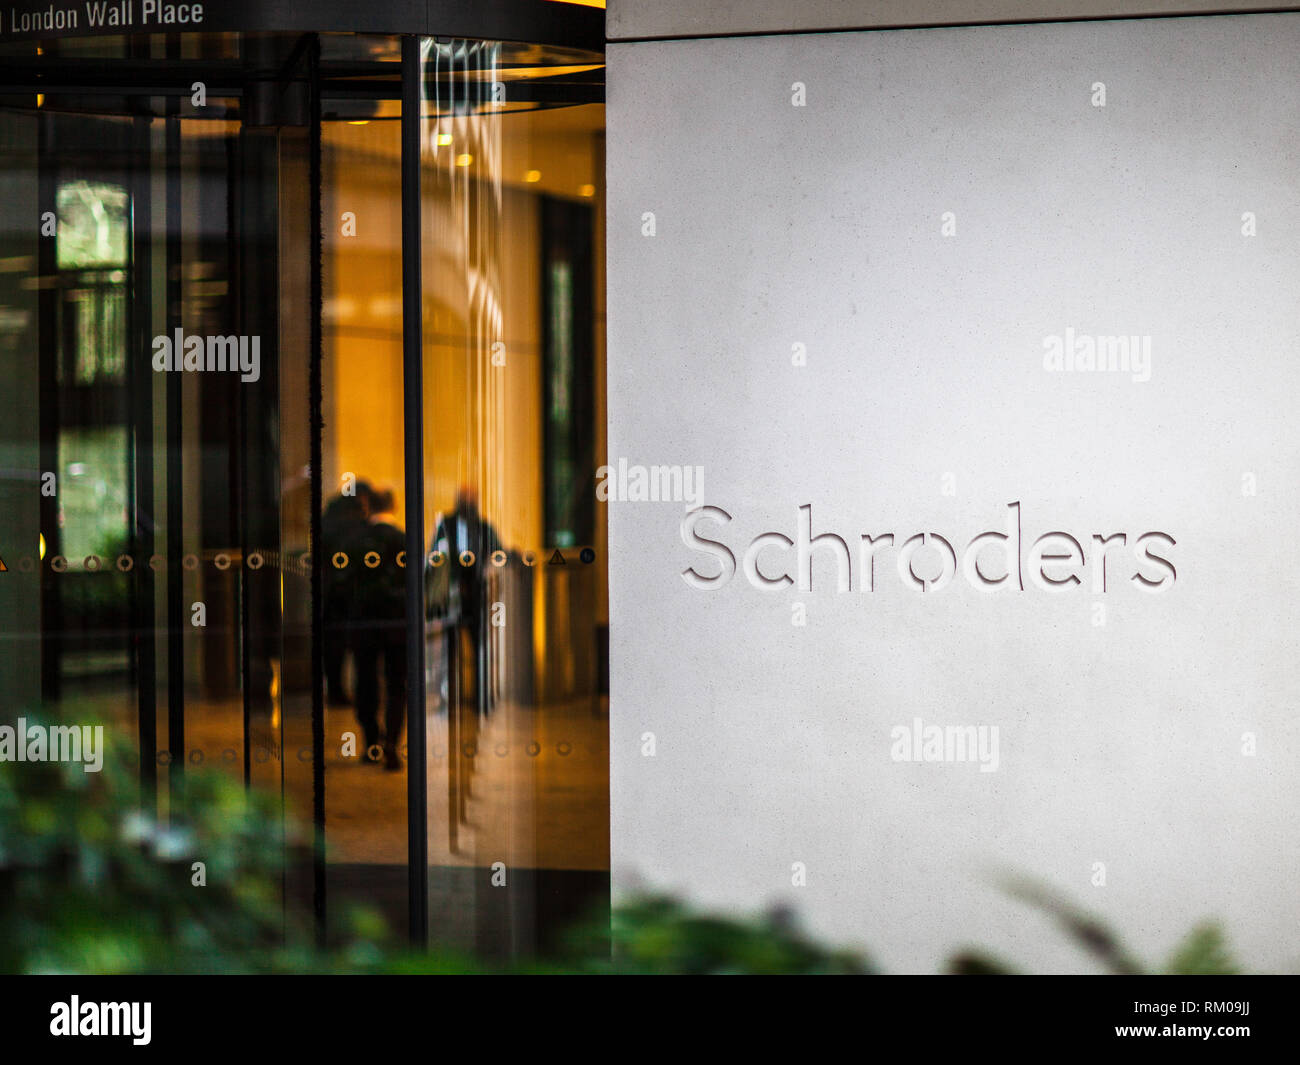 Schroders PLC Head Office HQ at 1 London Wall Place in the City of London Financial District. Multinational Asset Management Company, founded in 1804. - Stock Image